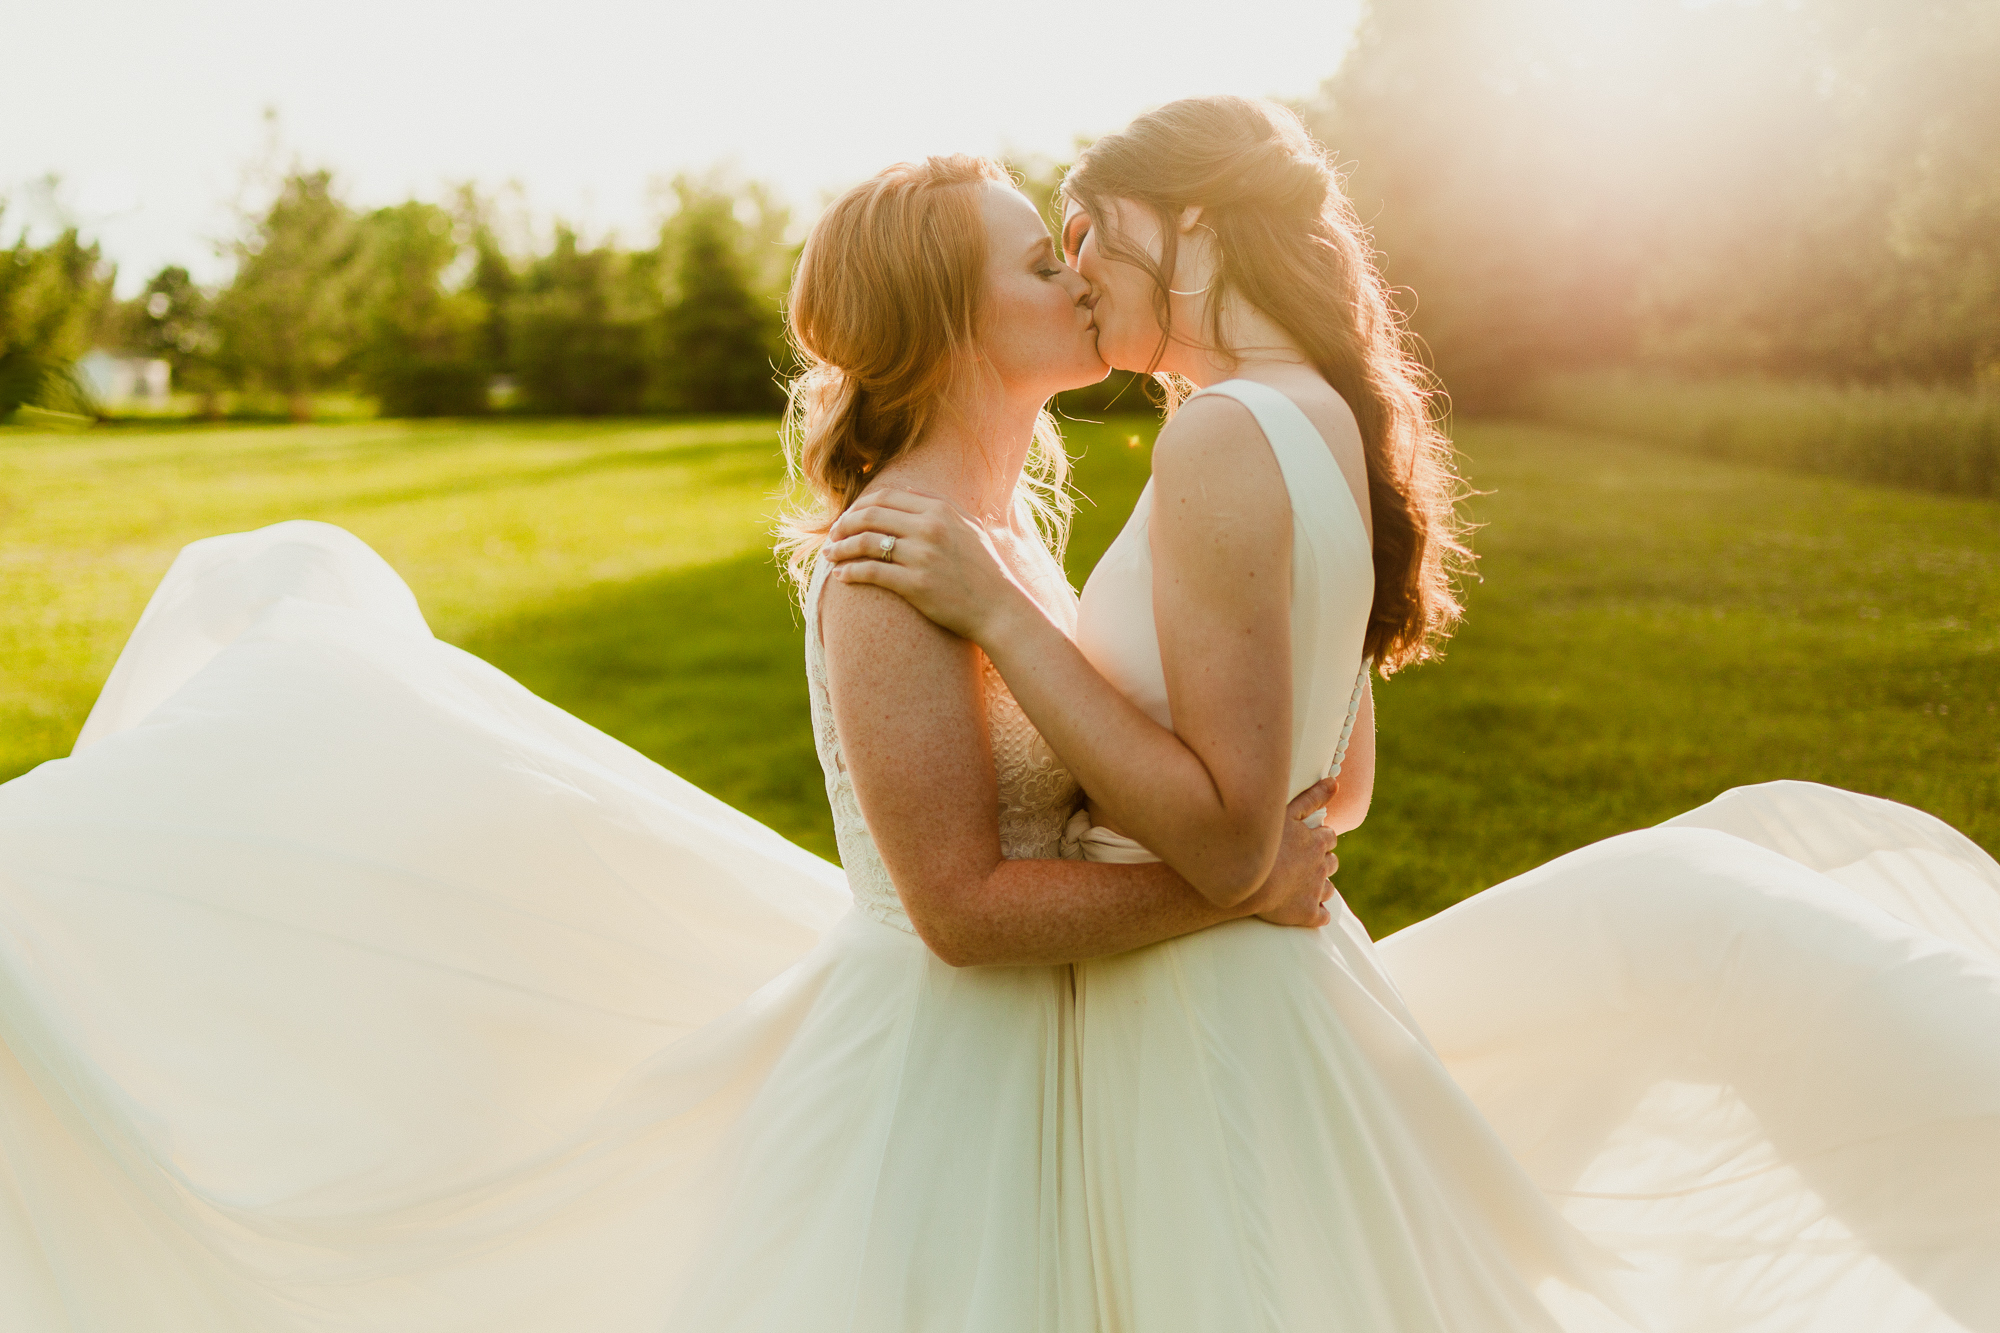 PRIDE | Queer Couple | LOVE IS LOVE | Wedding Gown